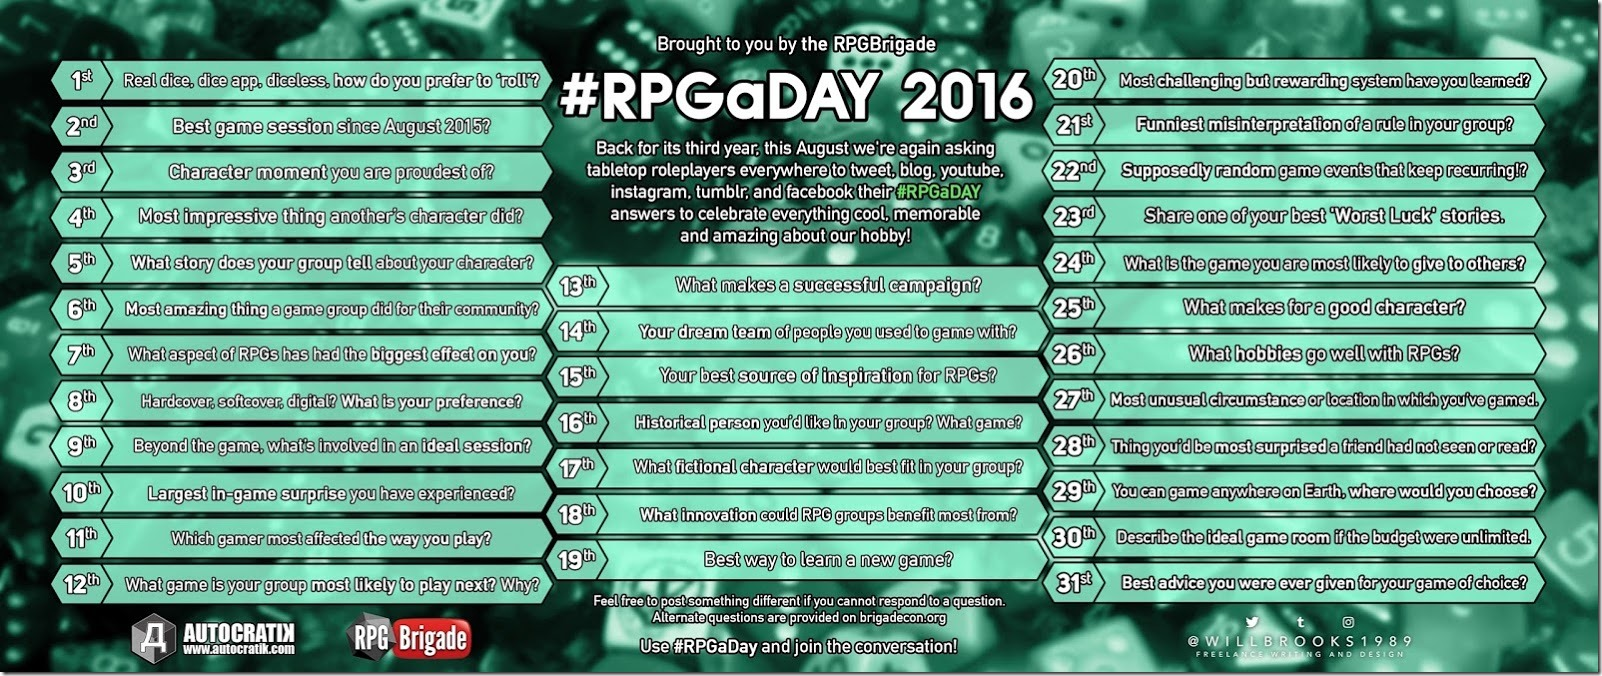 rpgaday-2016